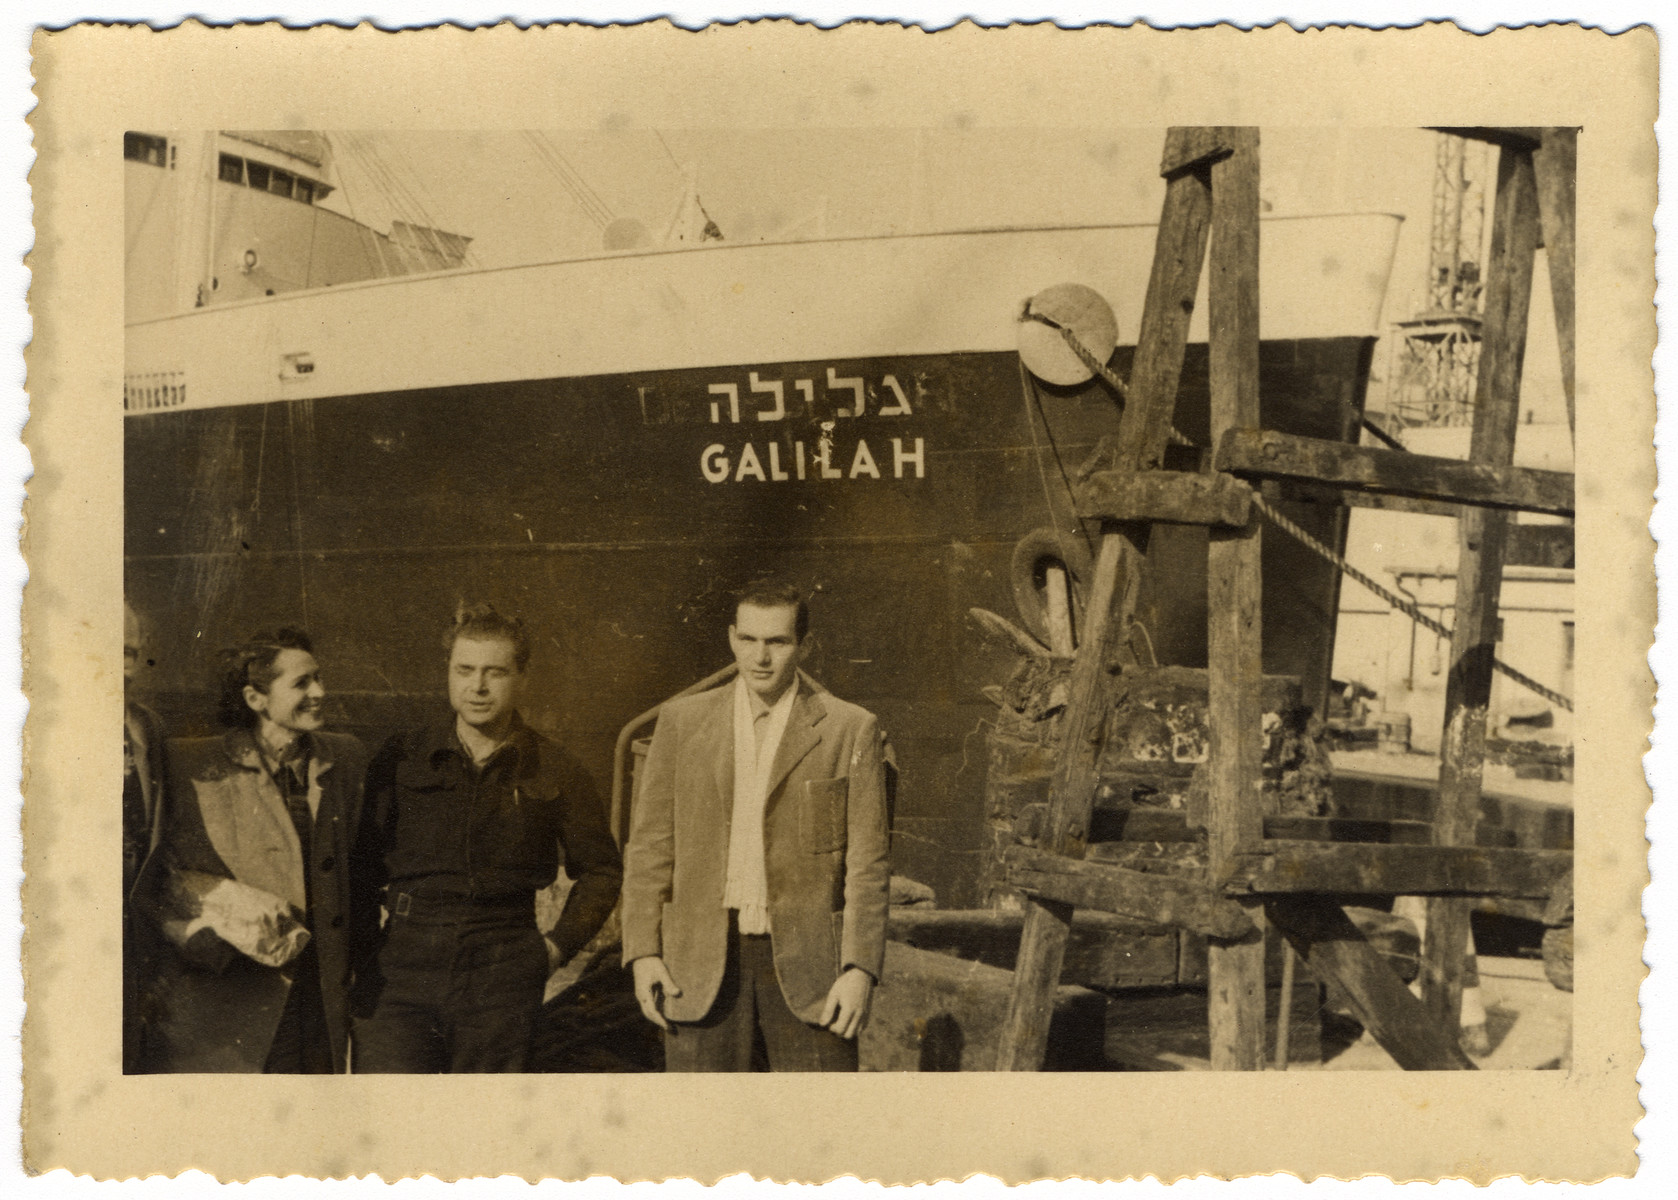 "Zev Siegel, the second mate ""Taffy"" and an unidentified woman pose in front of the dry-docked Galilah."